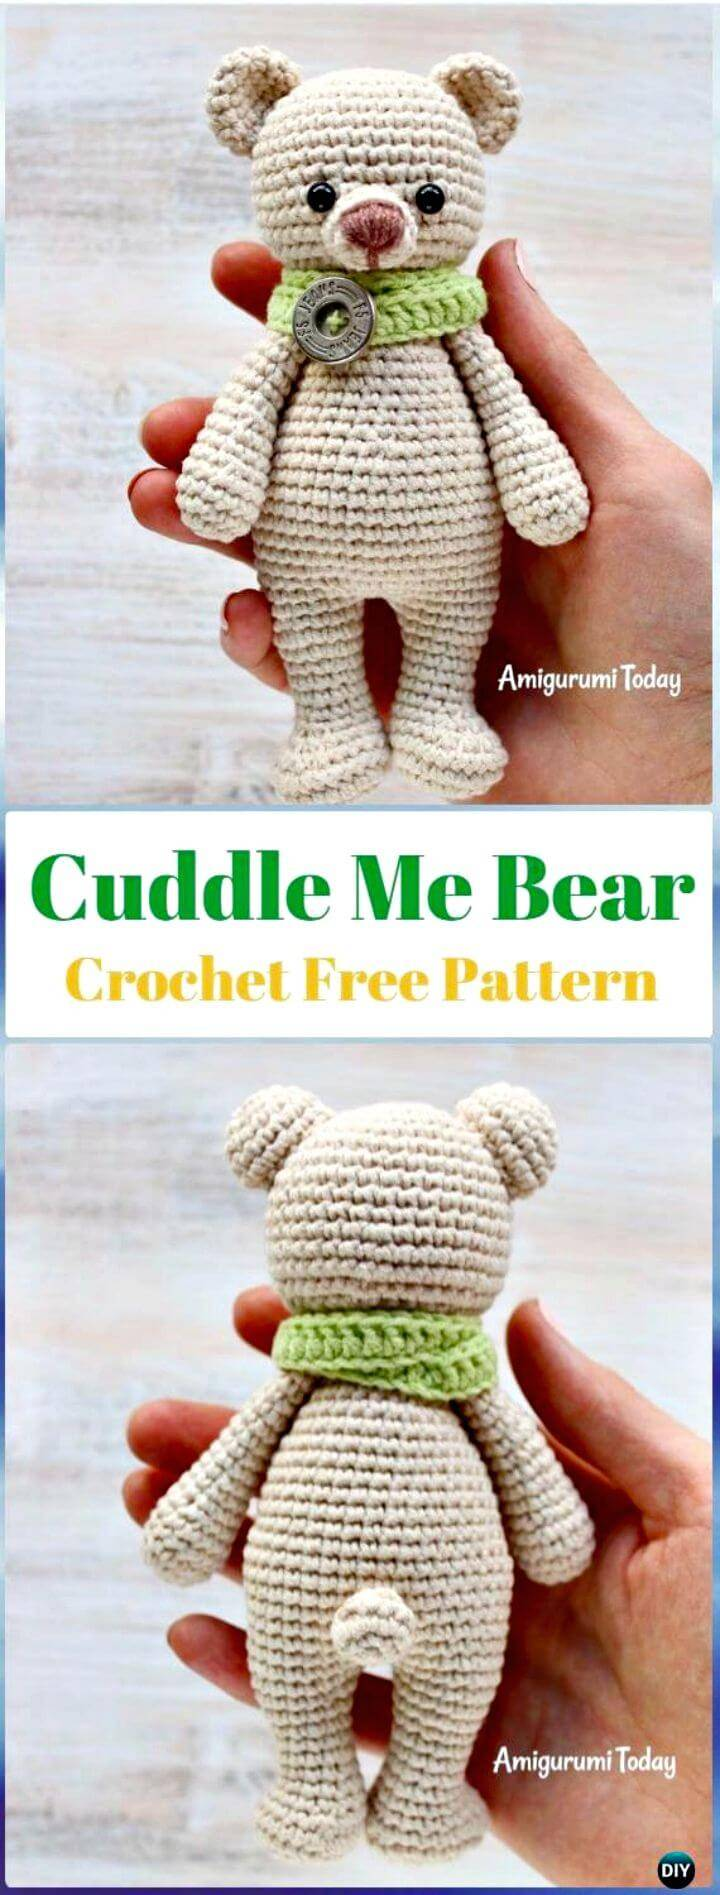 Free Crochet Cuddle Me Teddy Bear Pattern